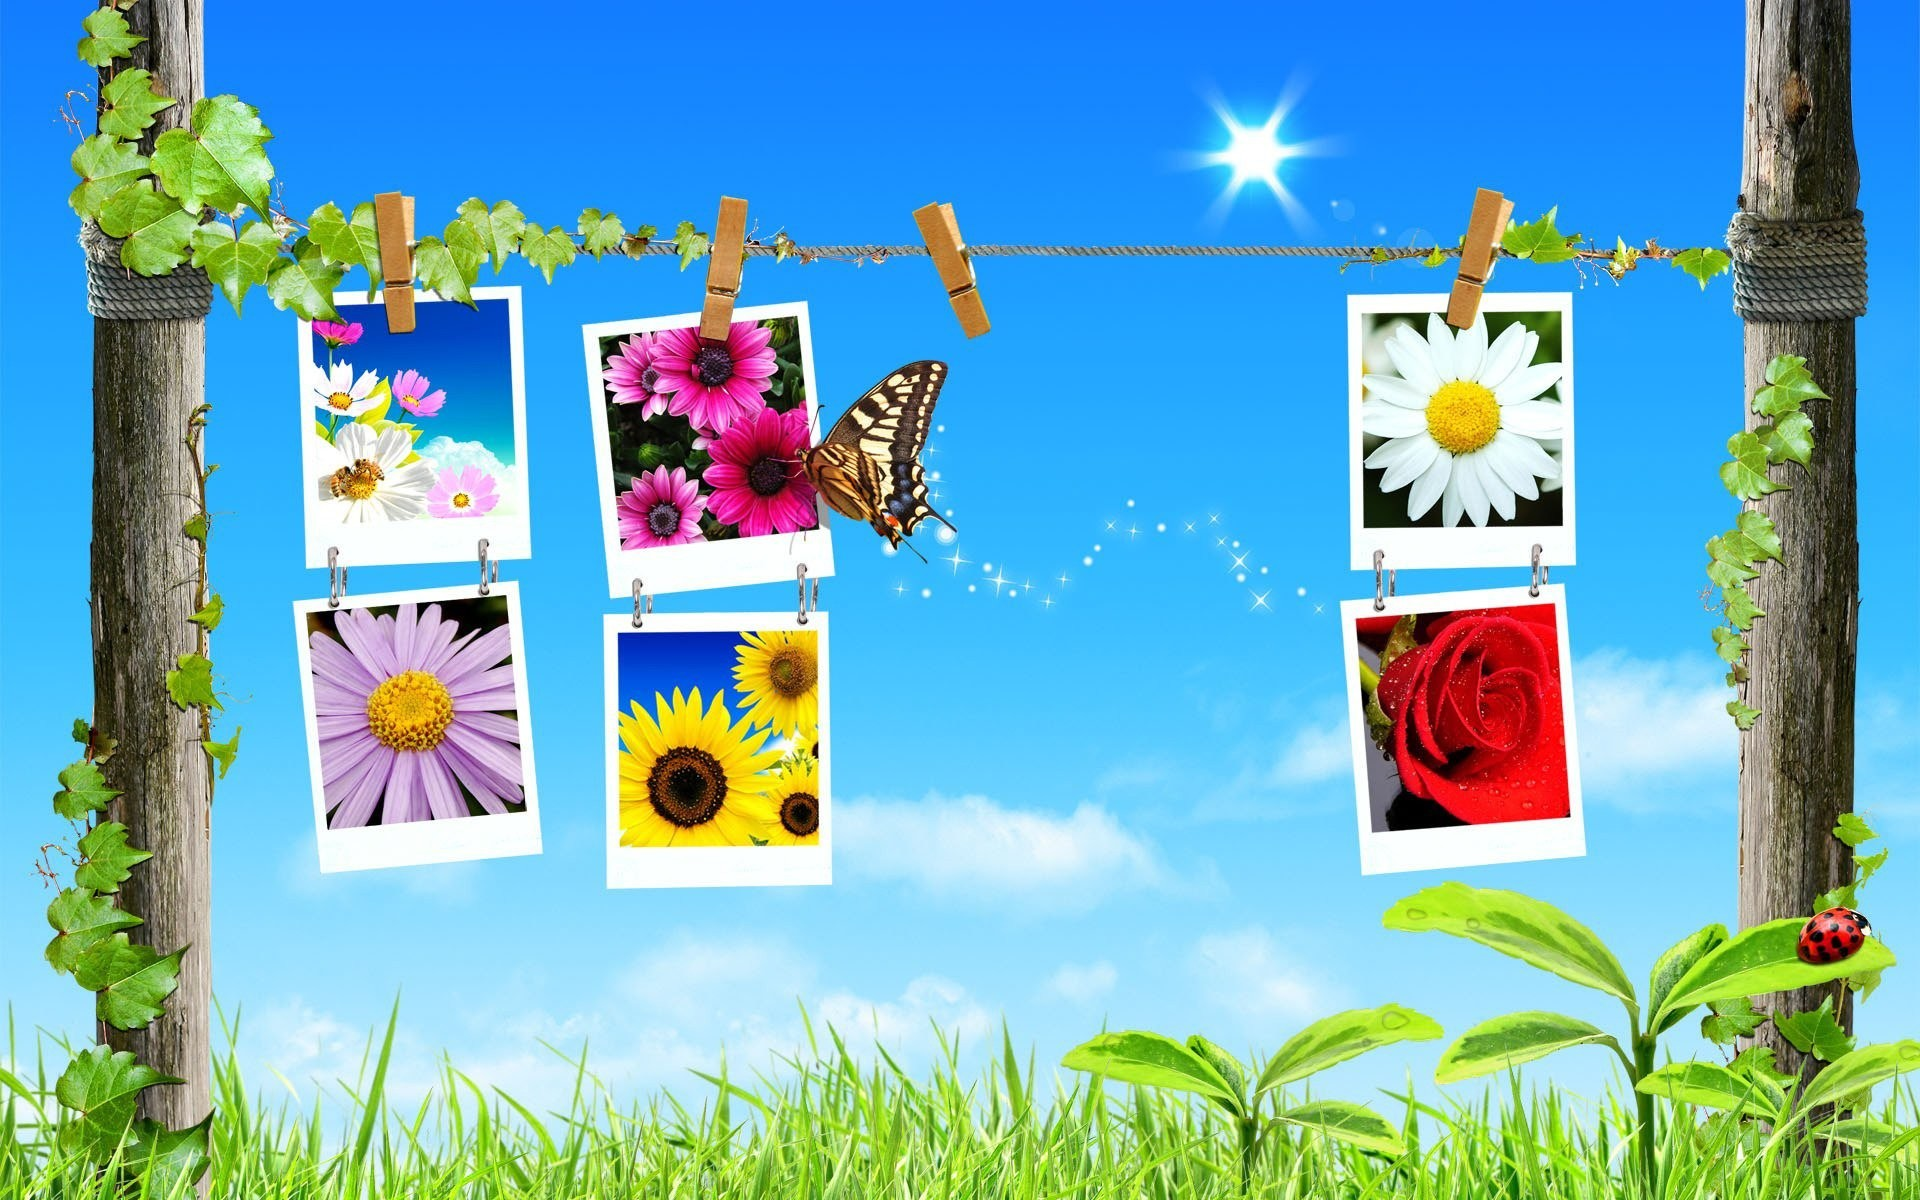 wallpaper-spring-background-computer-collage-title-59796 » wallpaper-spring -background-computer-collage-title-59796